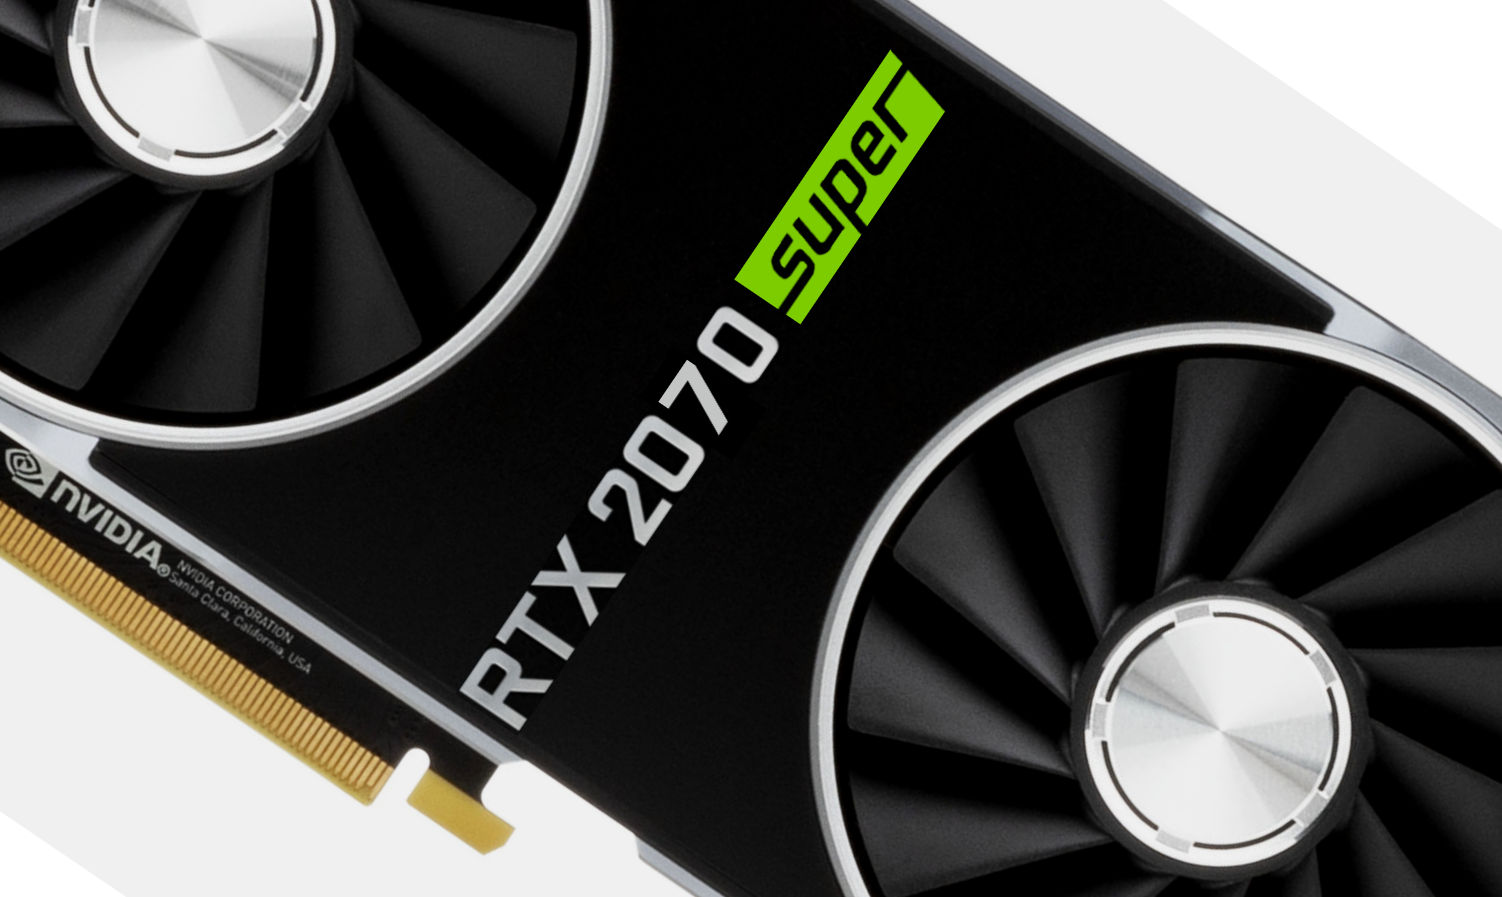 NVIDIA to announce GeForce RTX 2080 SUPER, 2070 SUPER and 2060 SUPER